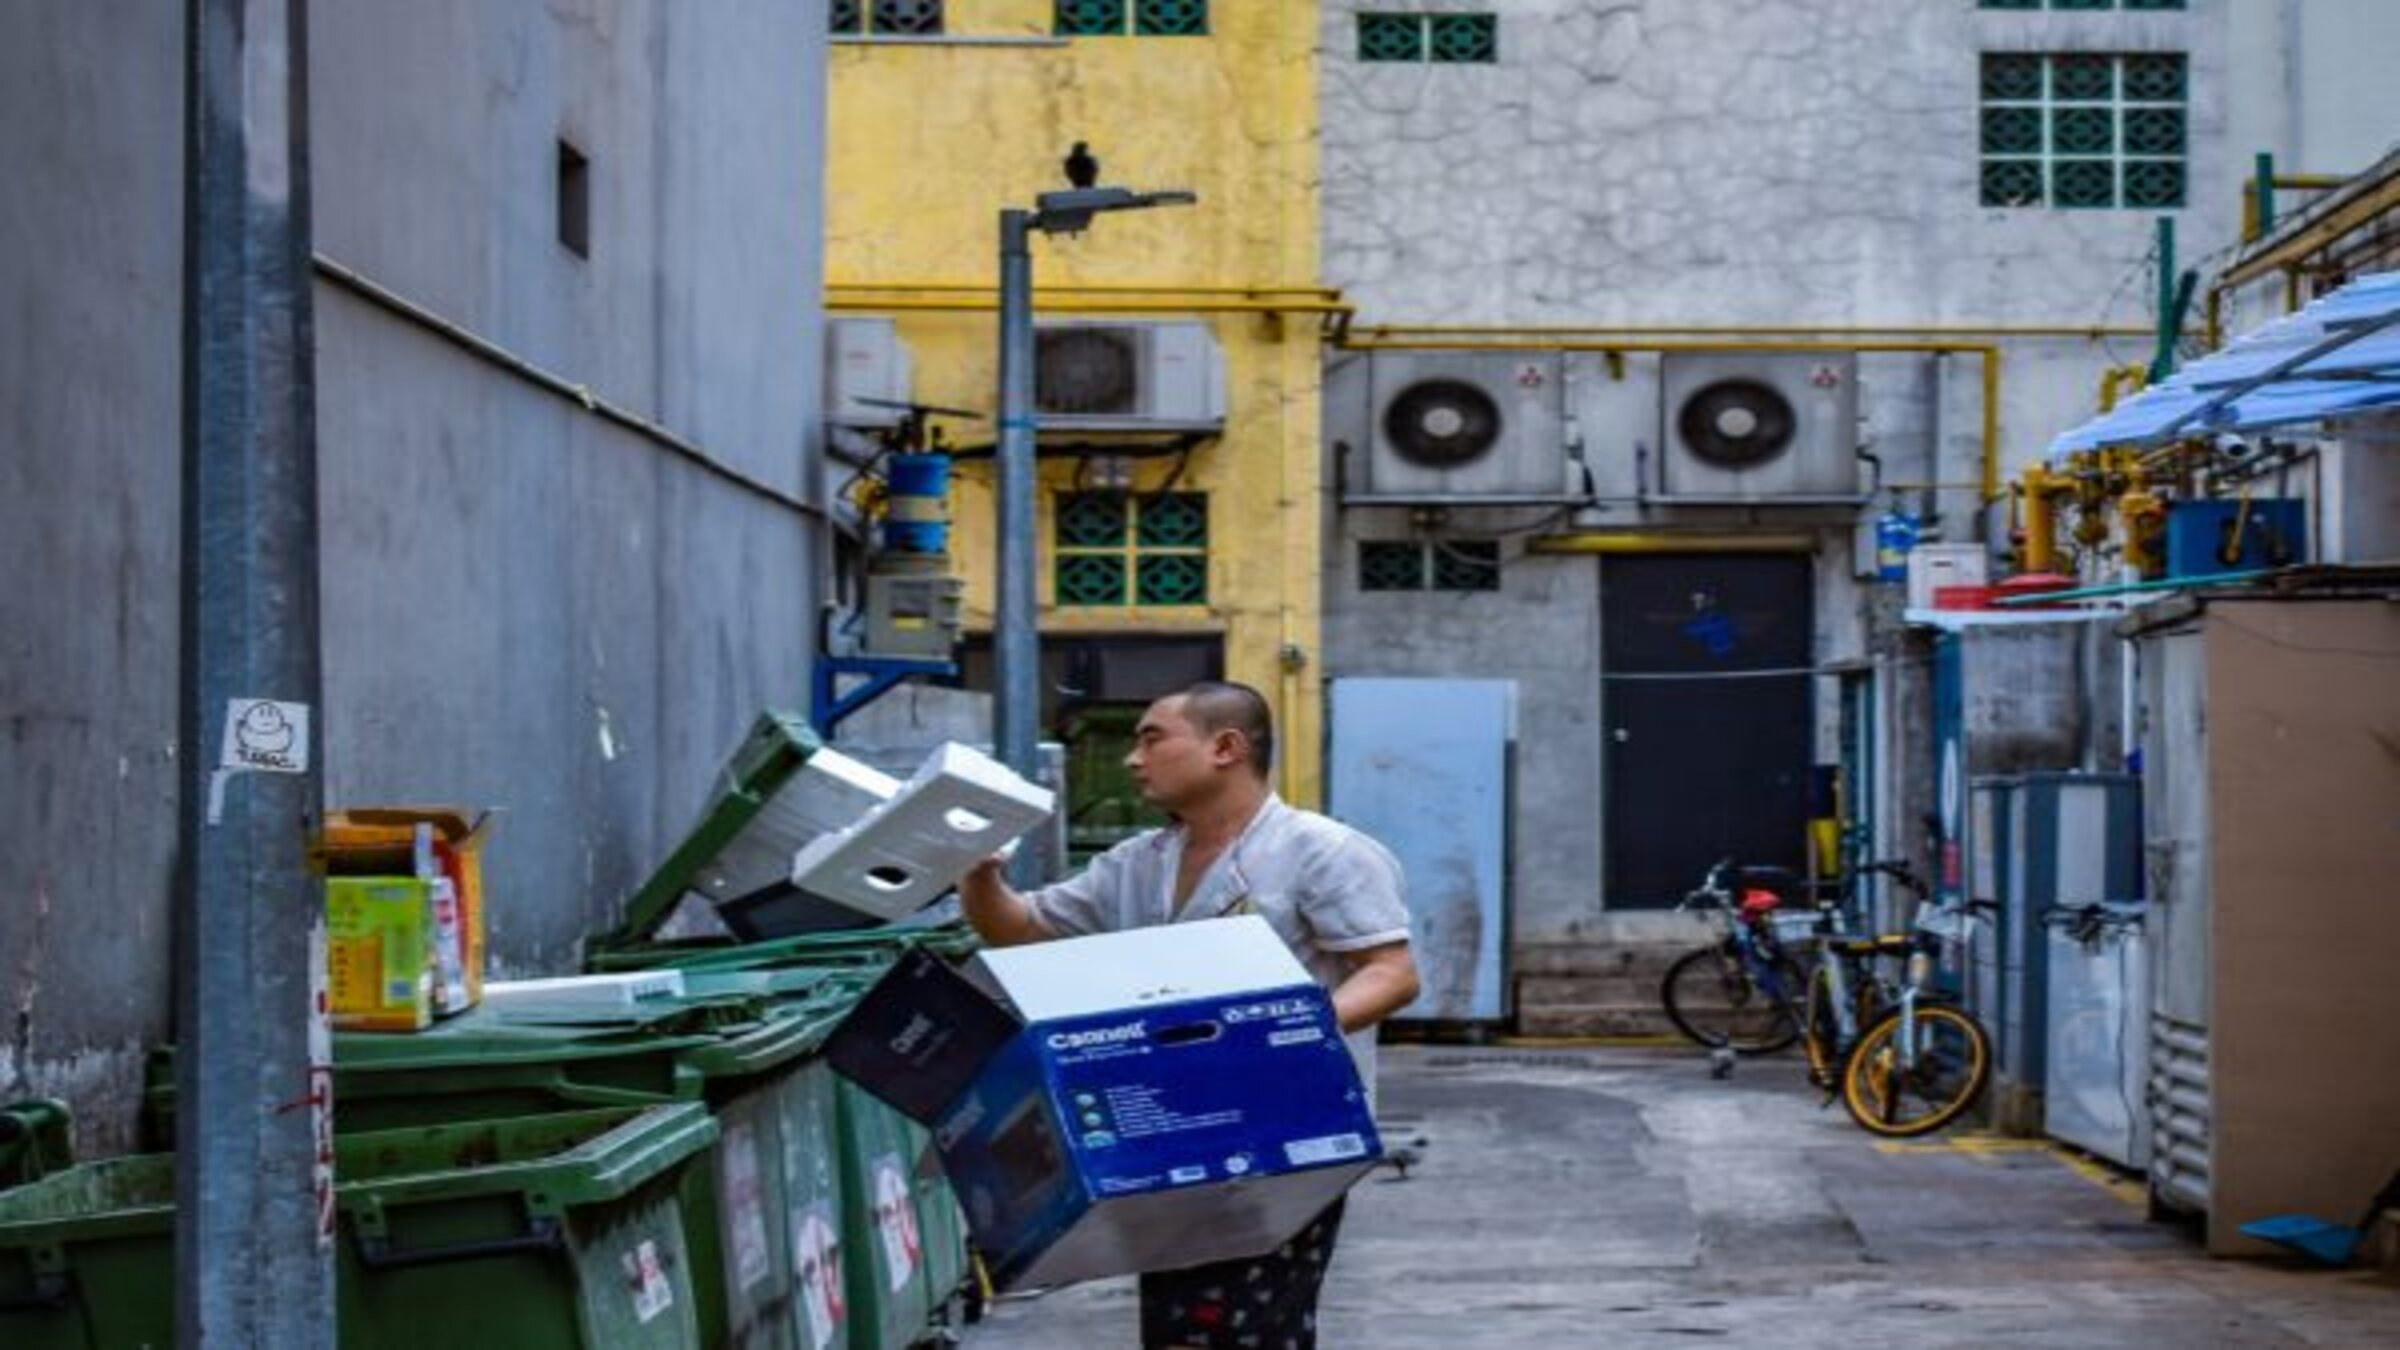 A 3-Step Guide to Recycling Well